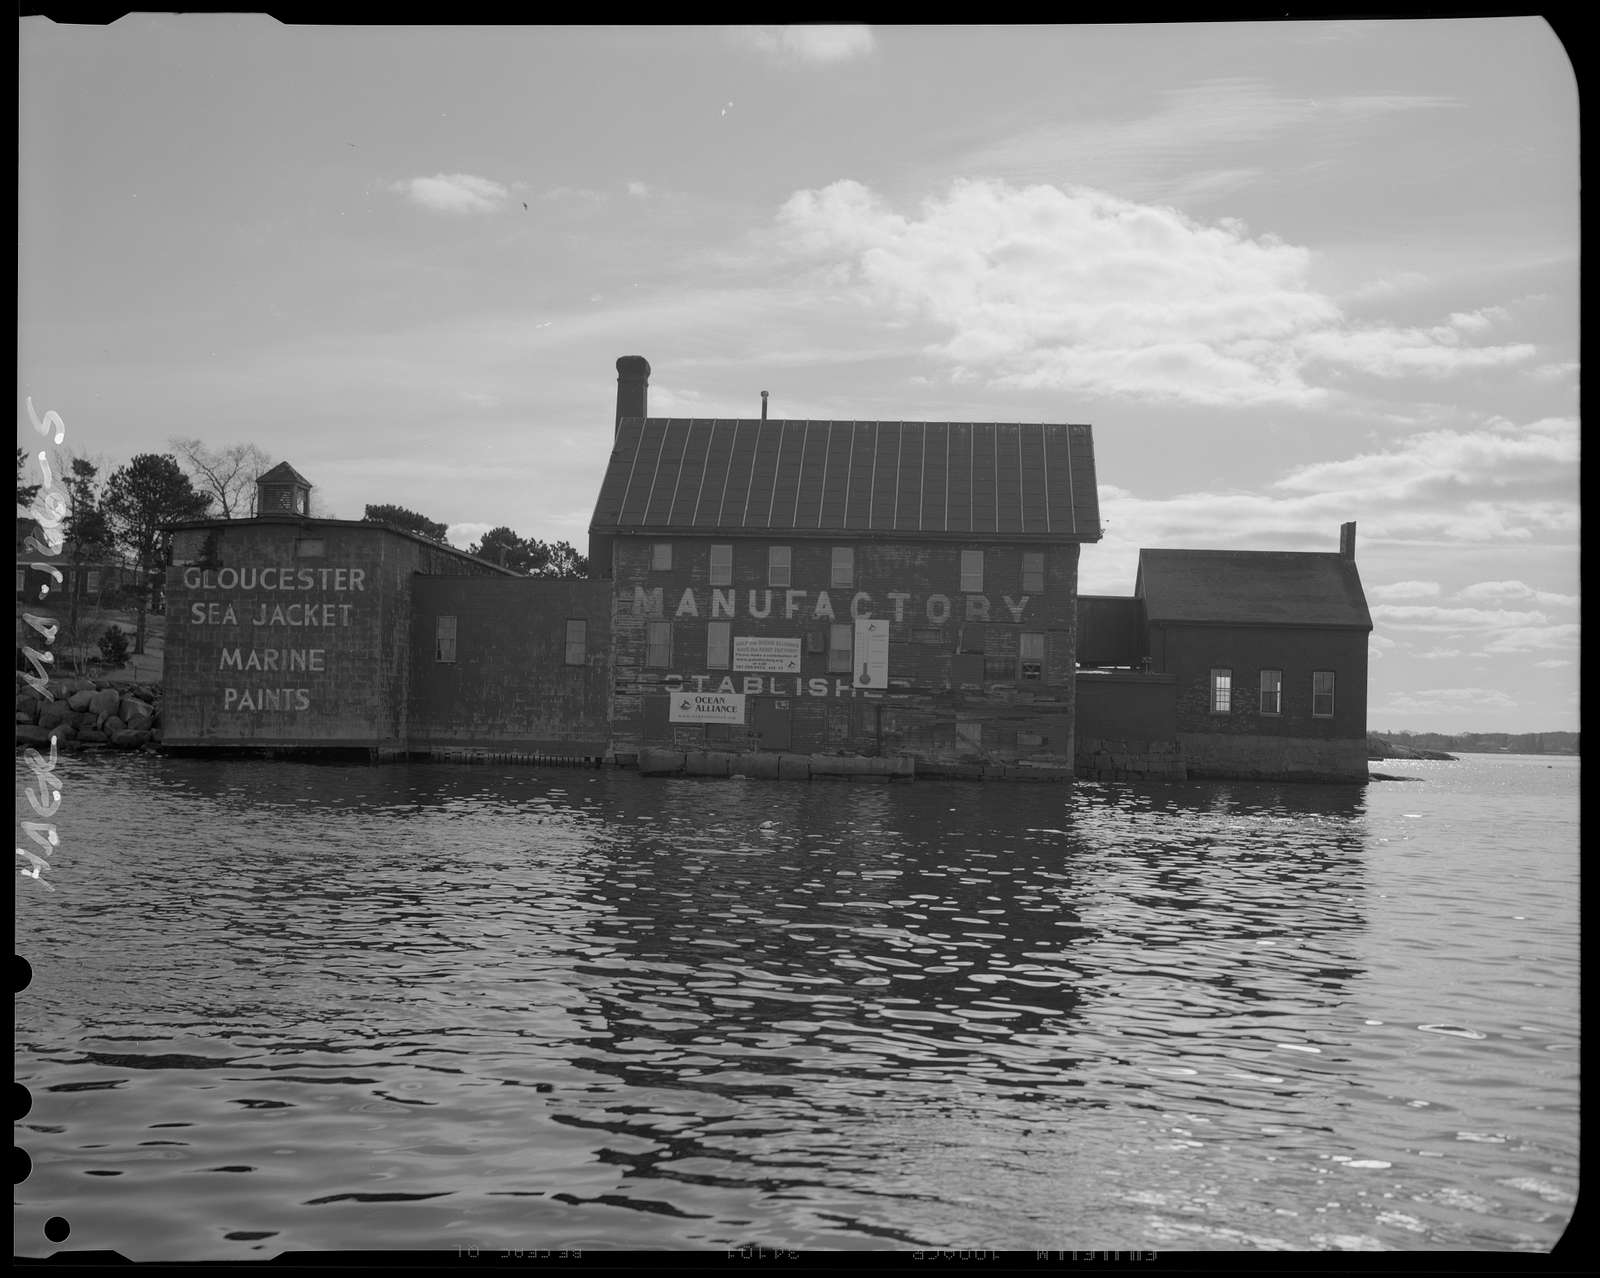 Tarr and Wonson Paint Factory, End of Horton Street, Gloucester, Essex County, MA